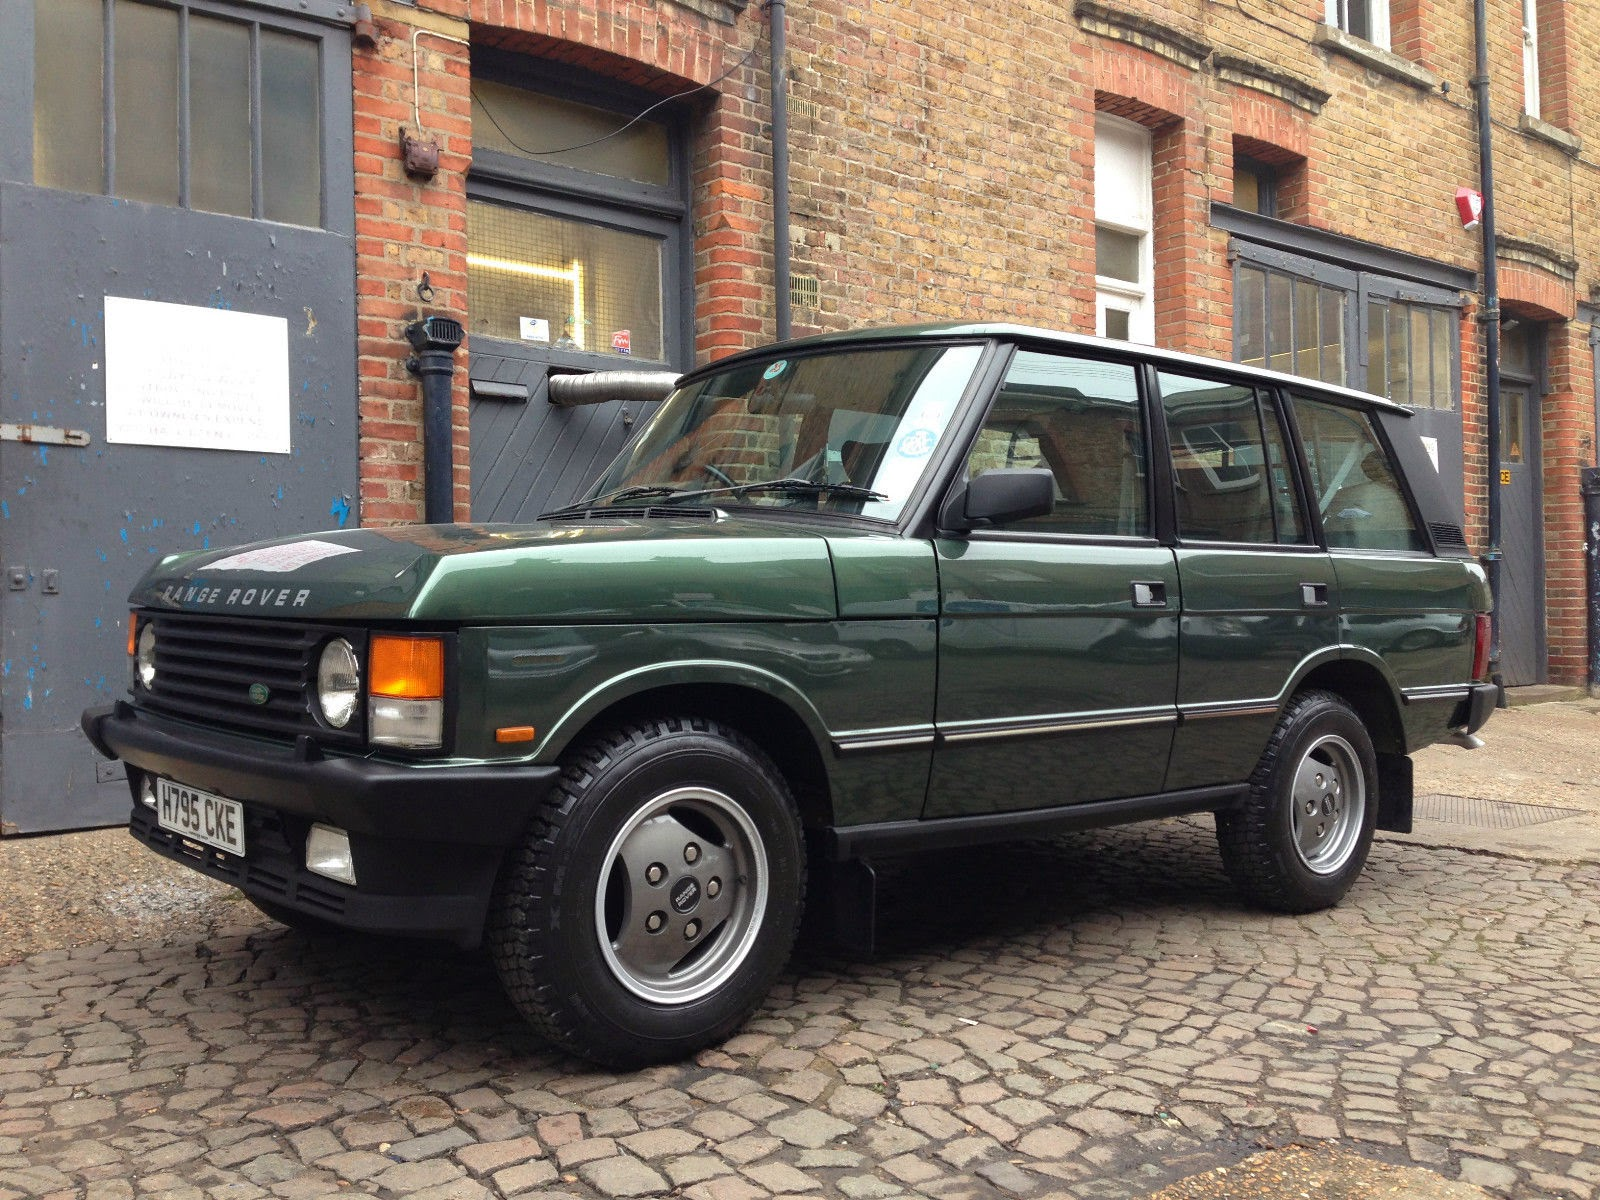 Badass Trucks & Cool SUVs - 1990-Land-Rover-Range-Rover-Vogue